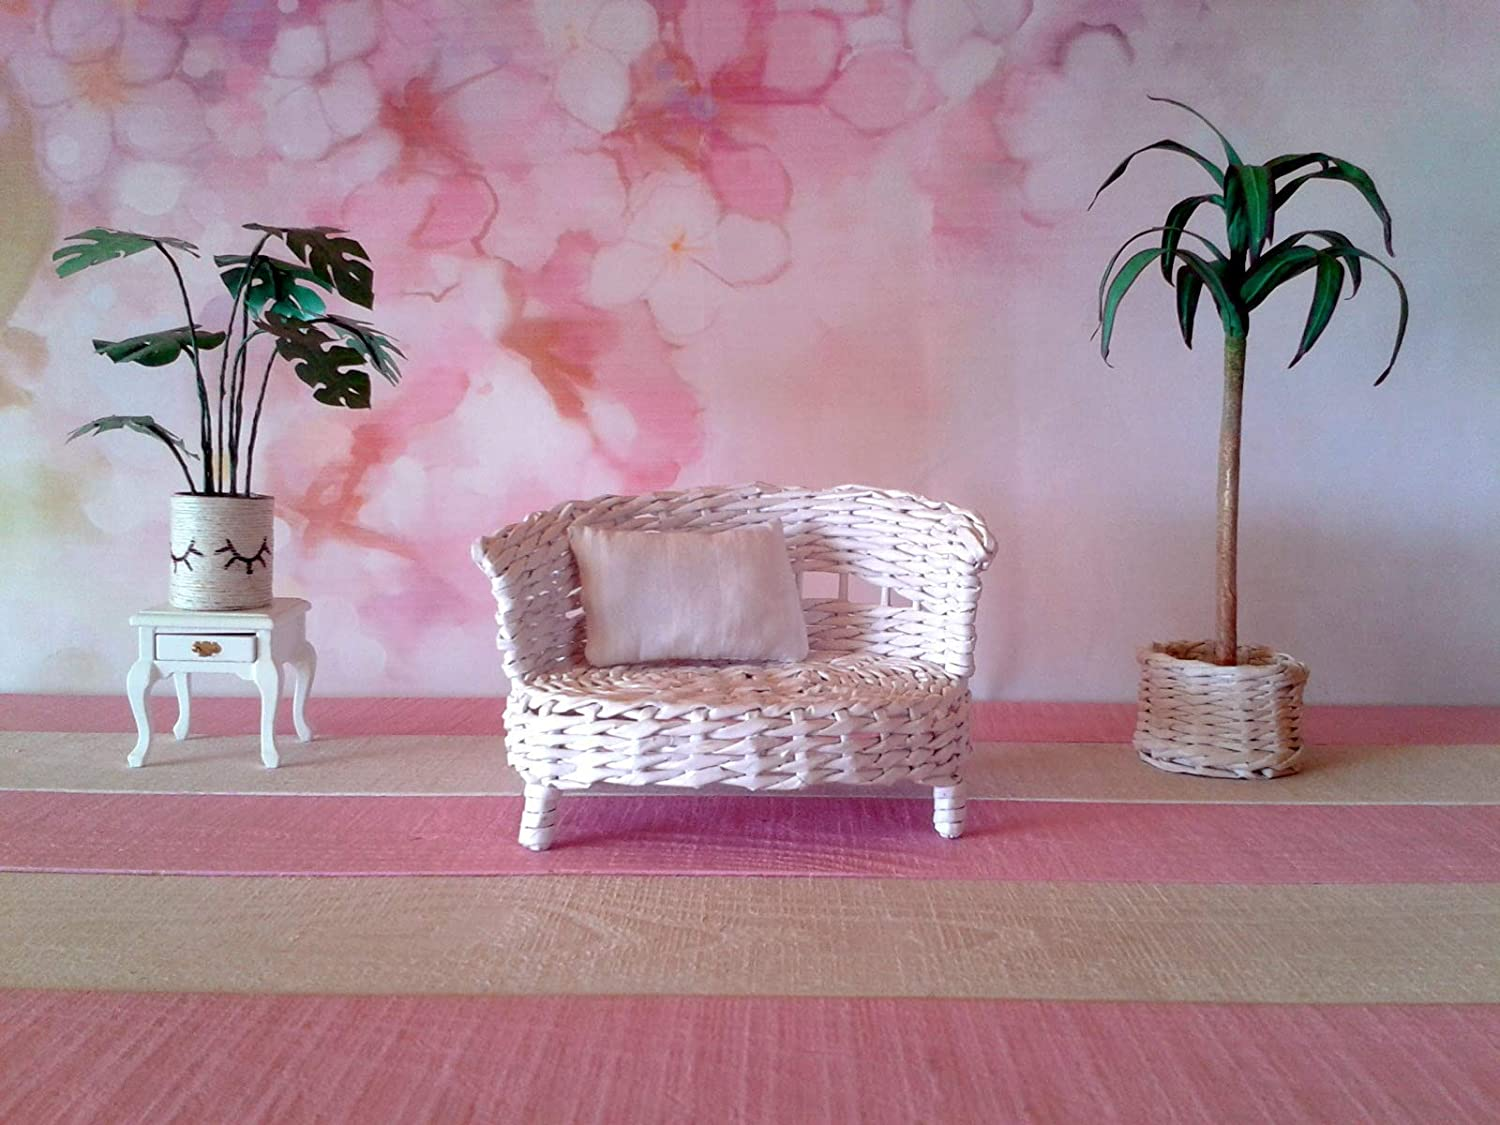 or 6-inch dolls and dollhouses Lati Yellow couch Miniature handmade white wicker sofa for 1//8 scale